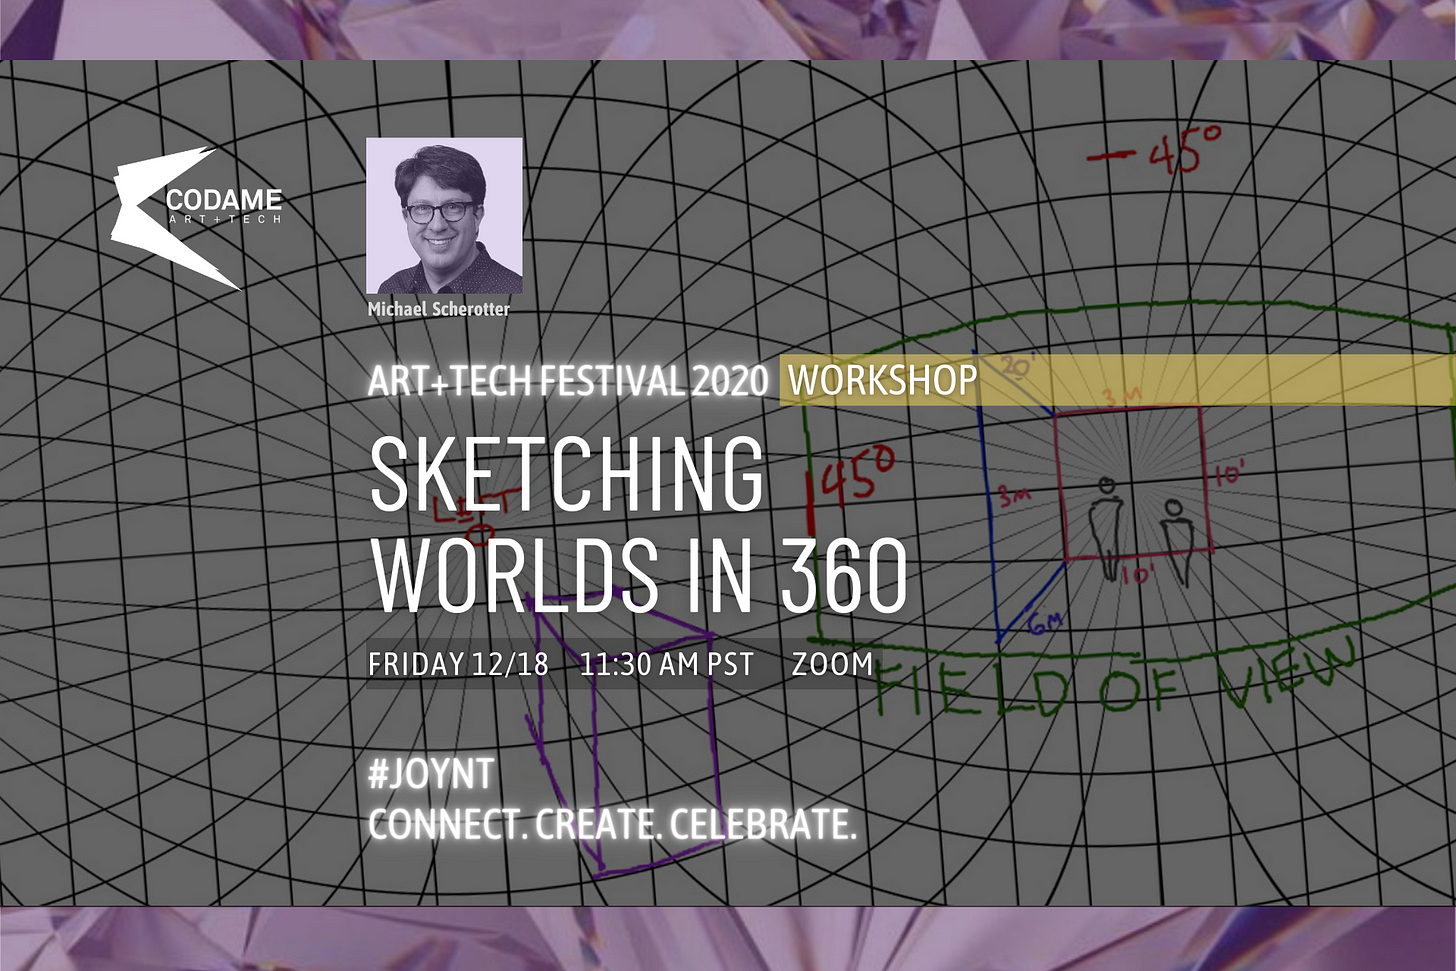 Sketching Worlds in 360